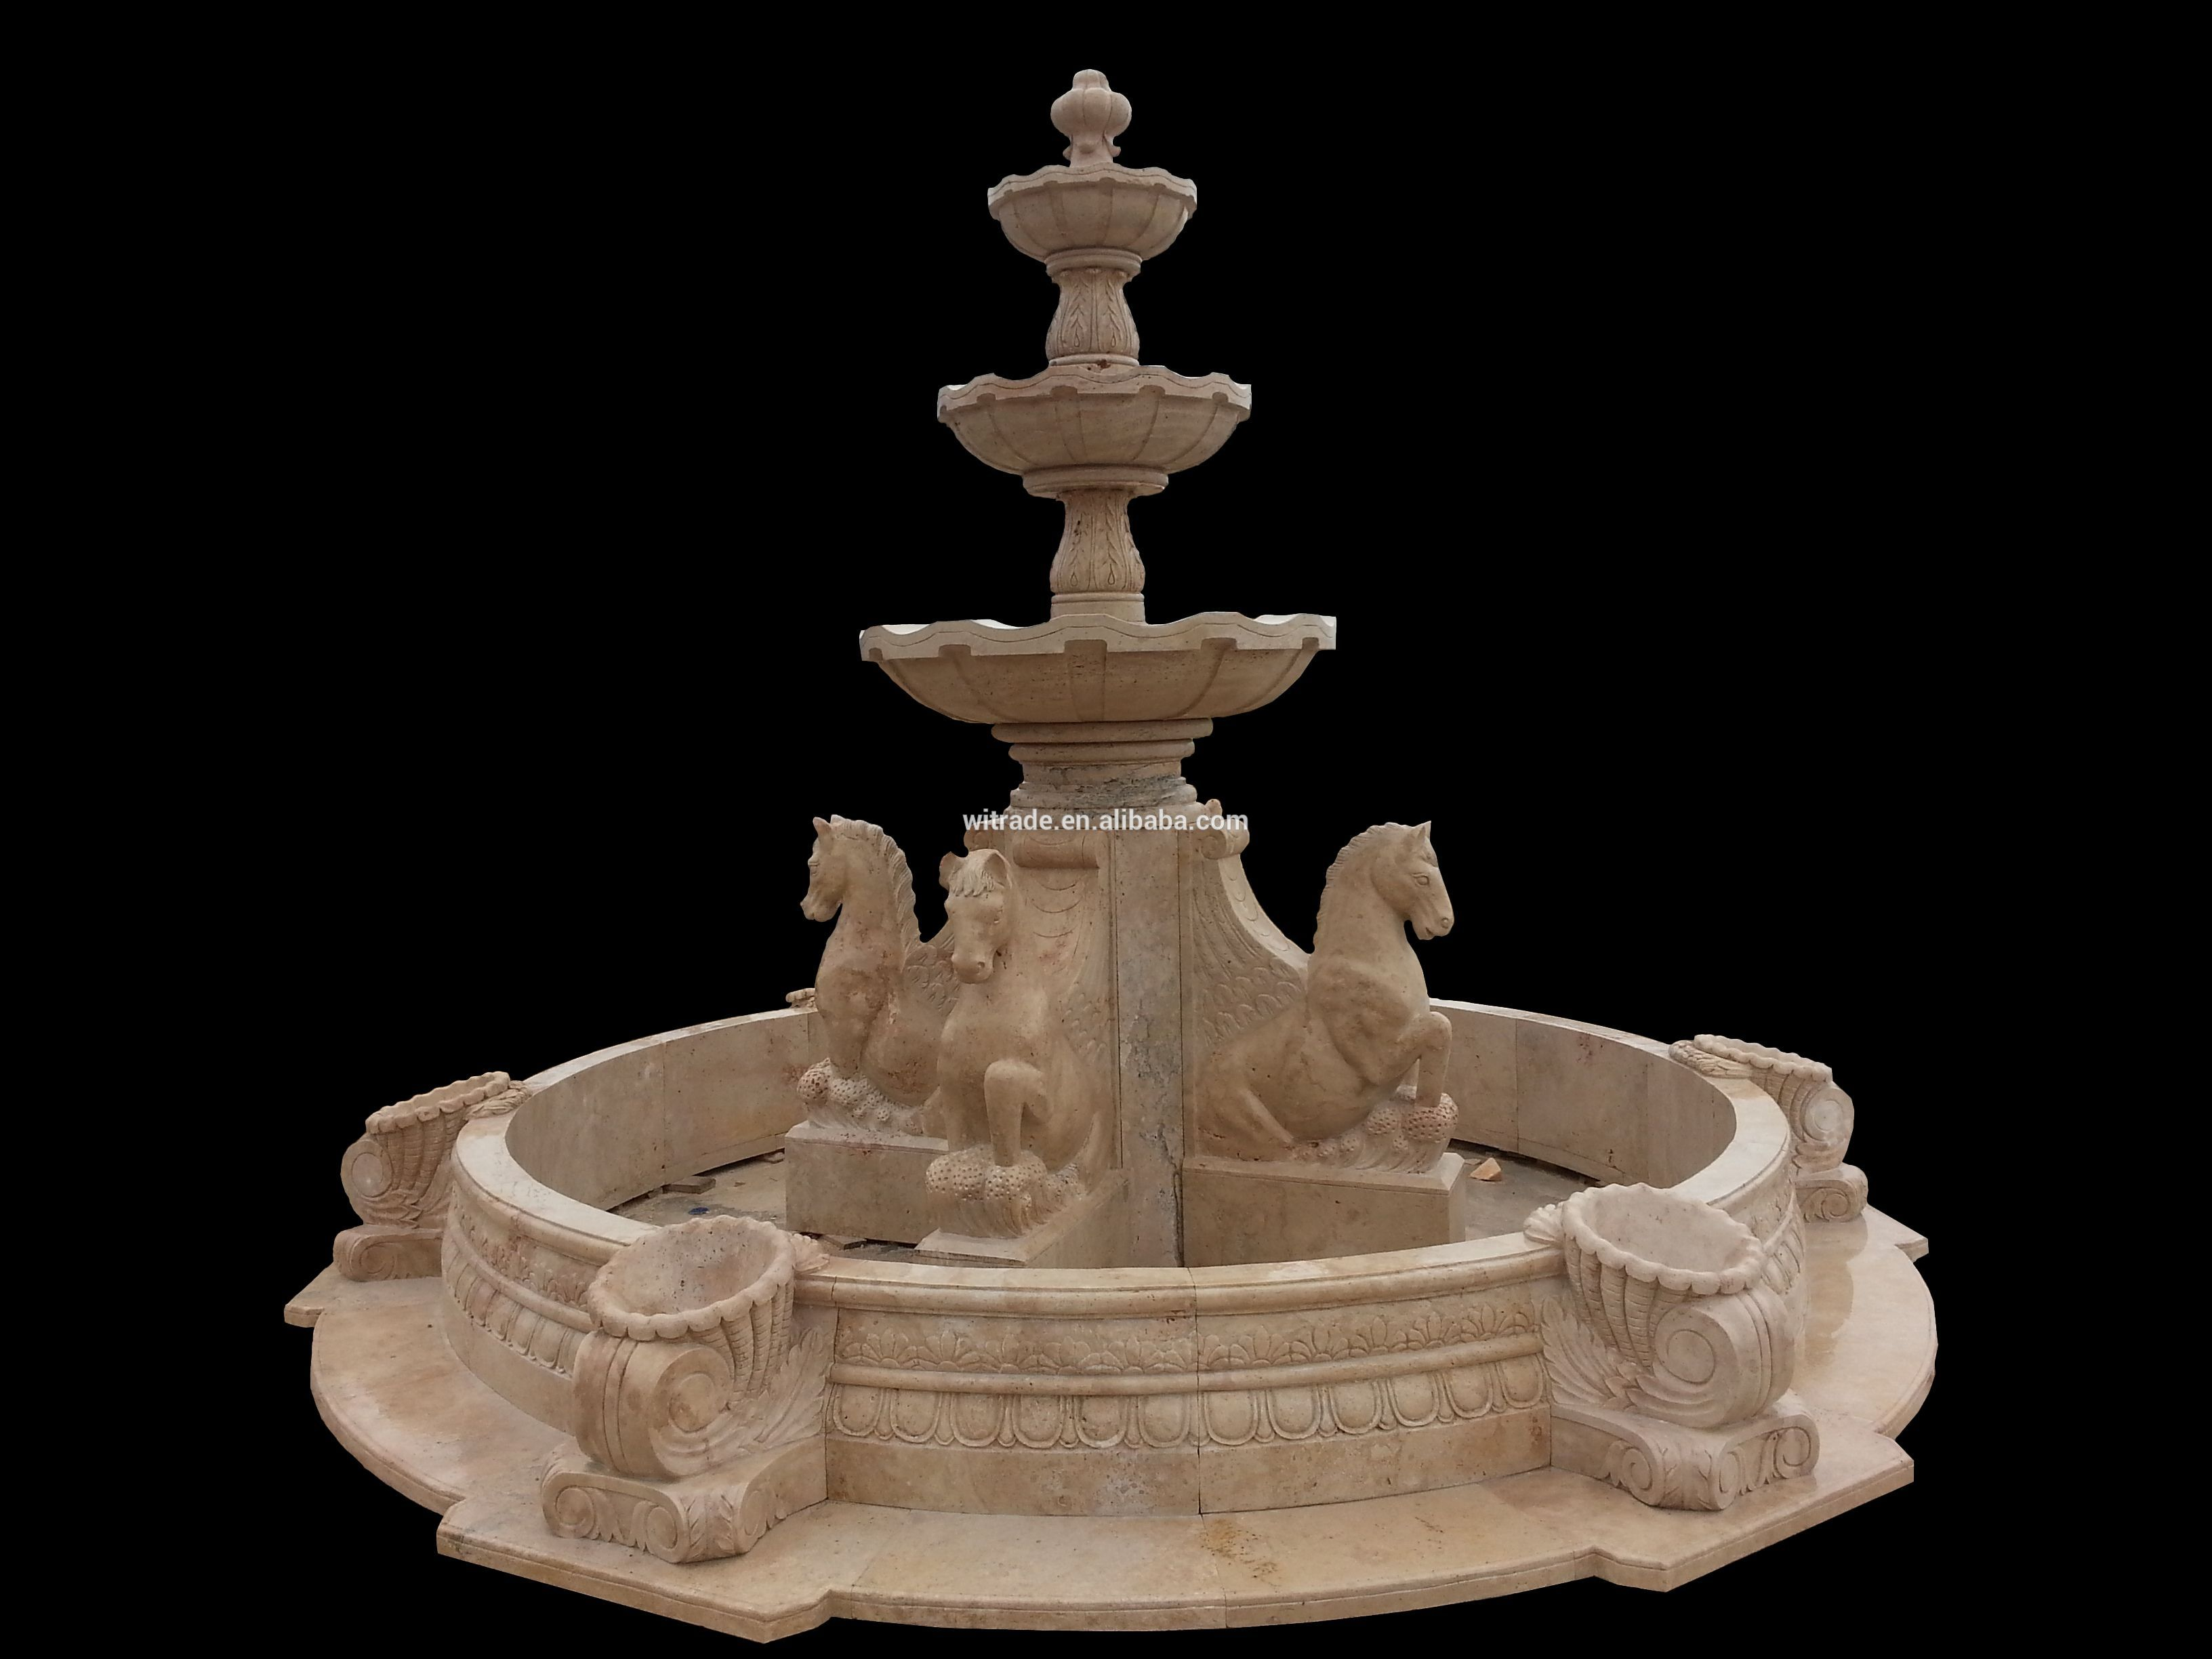 Large Outdoor Stone Granite Decorative Home Garden Marble Pool 3 Tier Water Fountain